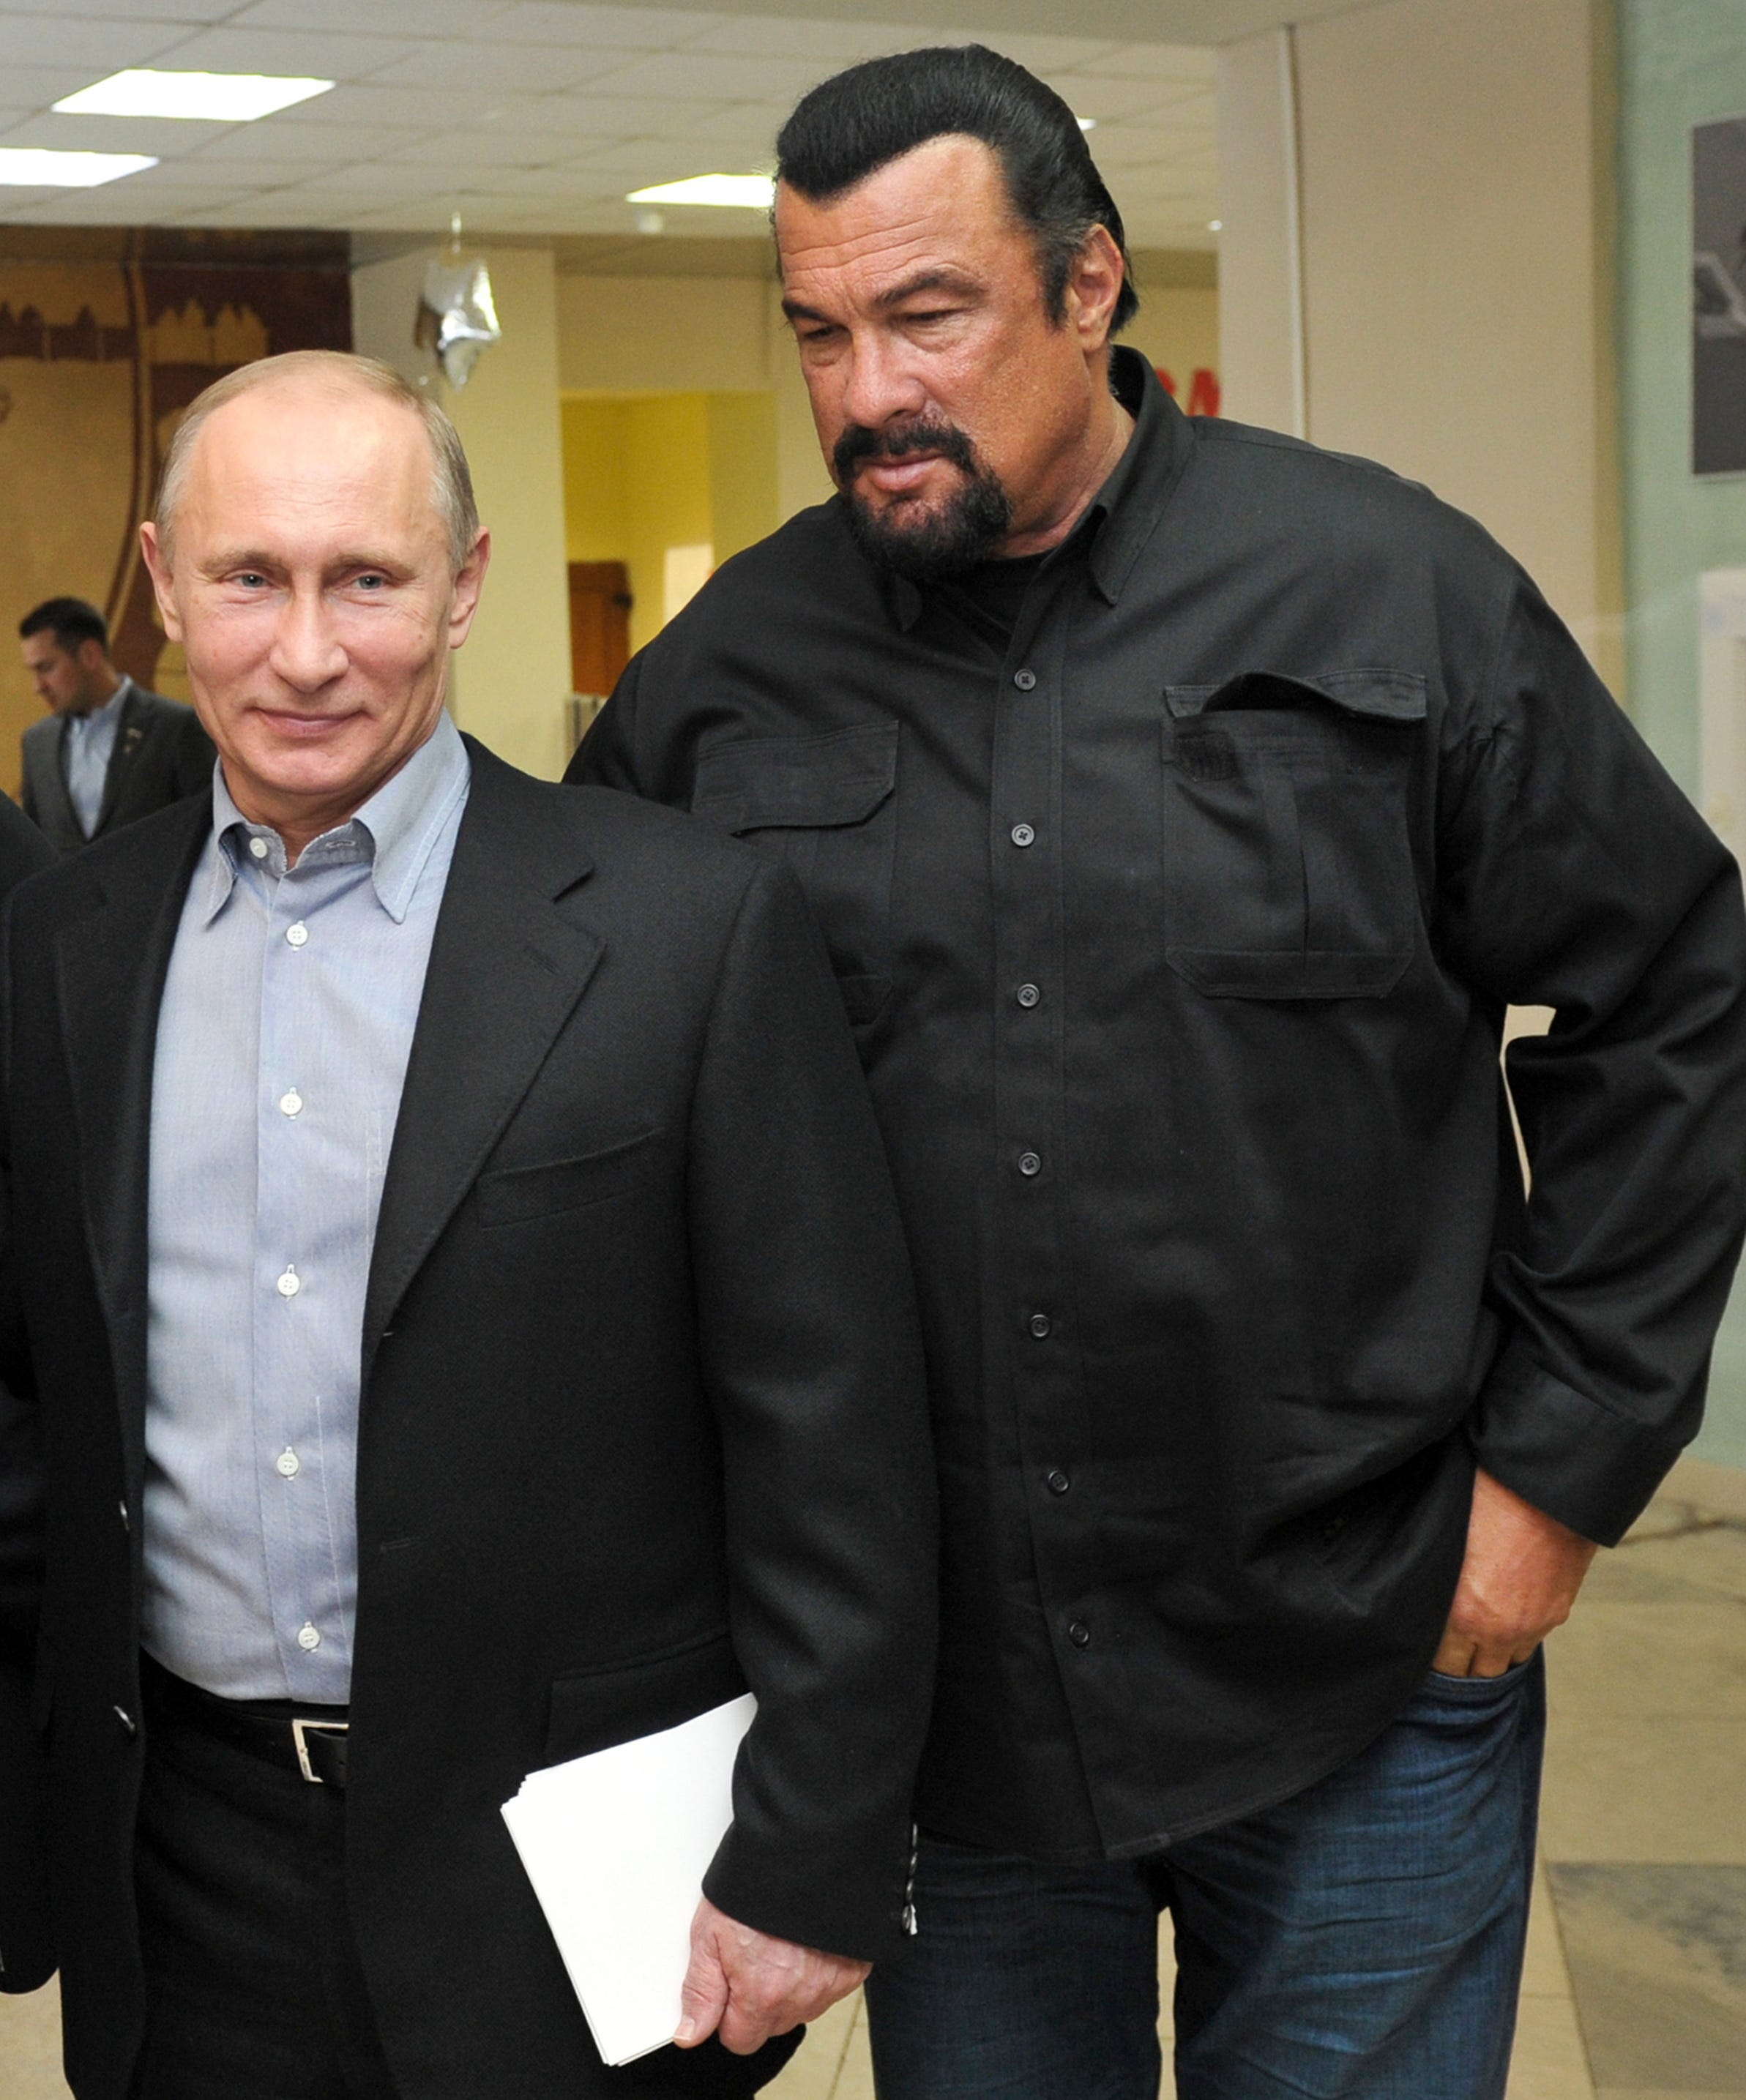 Steven seagal black and white dresses